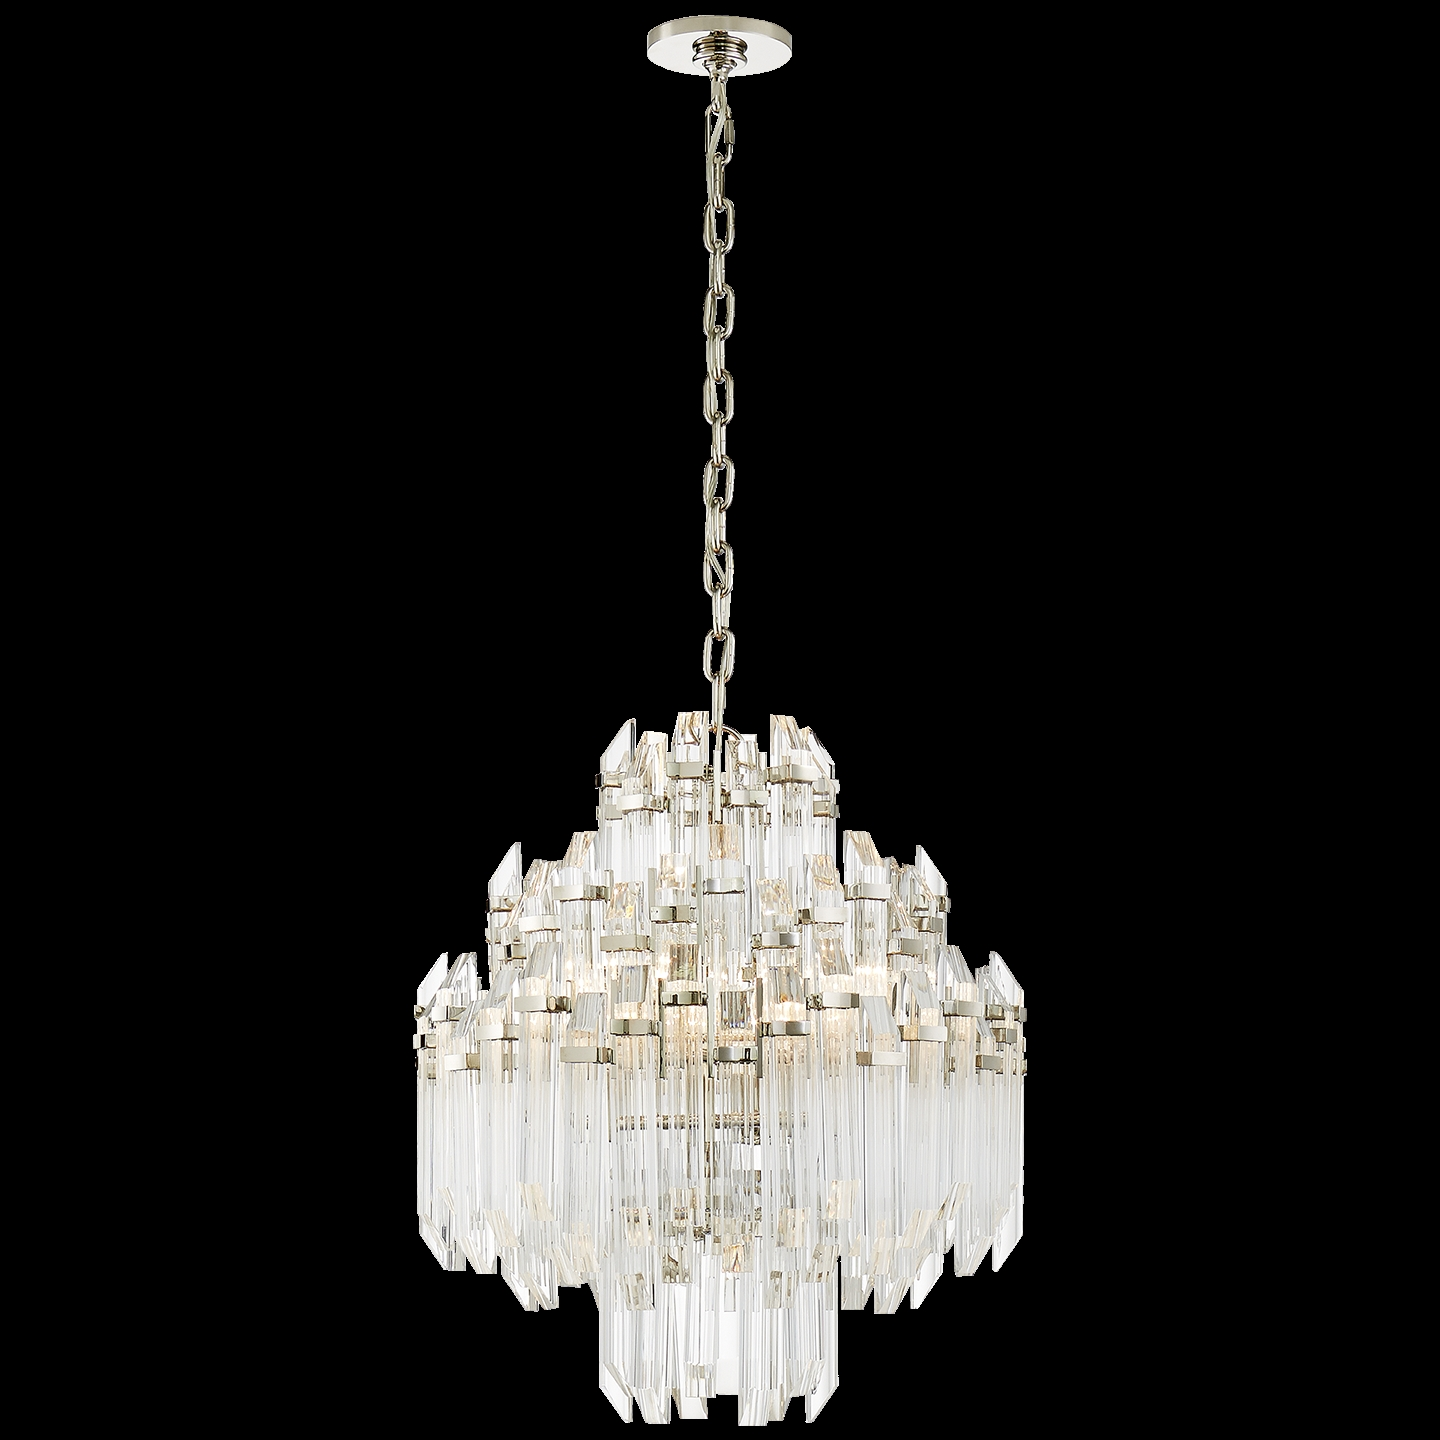 Signature Designer Crystal Chandelier Circa Lighting With Regard To Waterfall Chandeliers (Image 18 of 25)